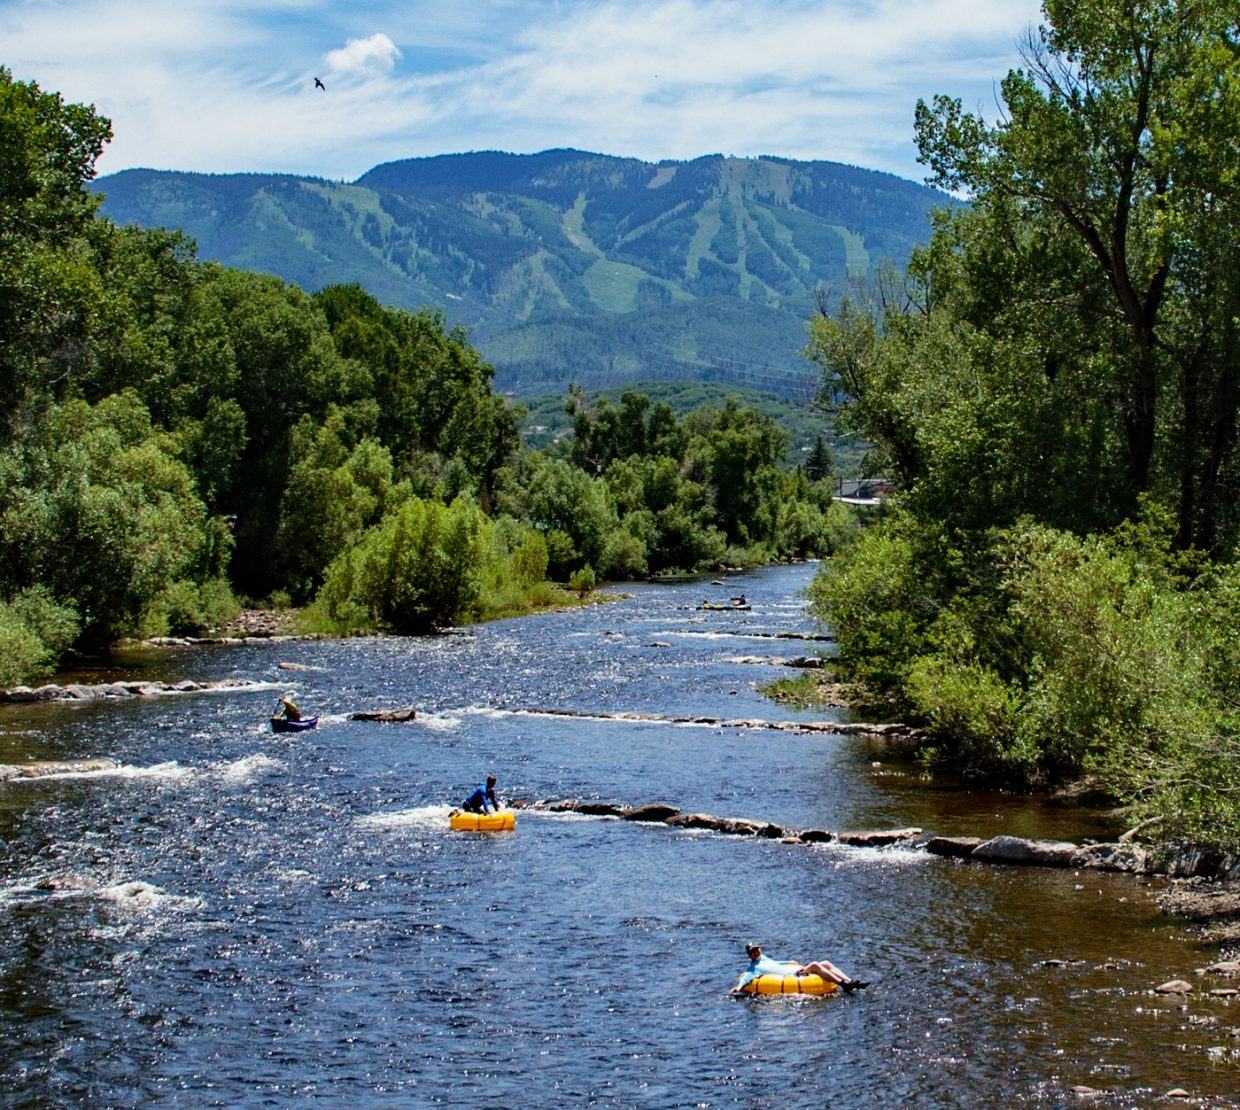 Summer Fun on the Yampa River in Steamboat Springs.